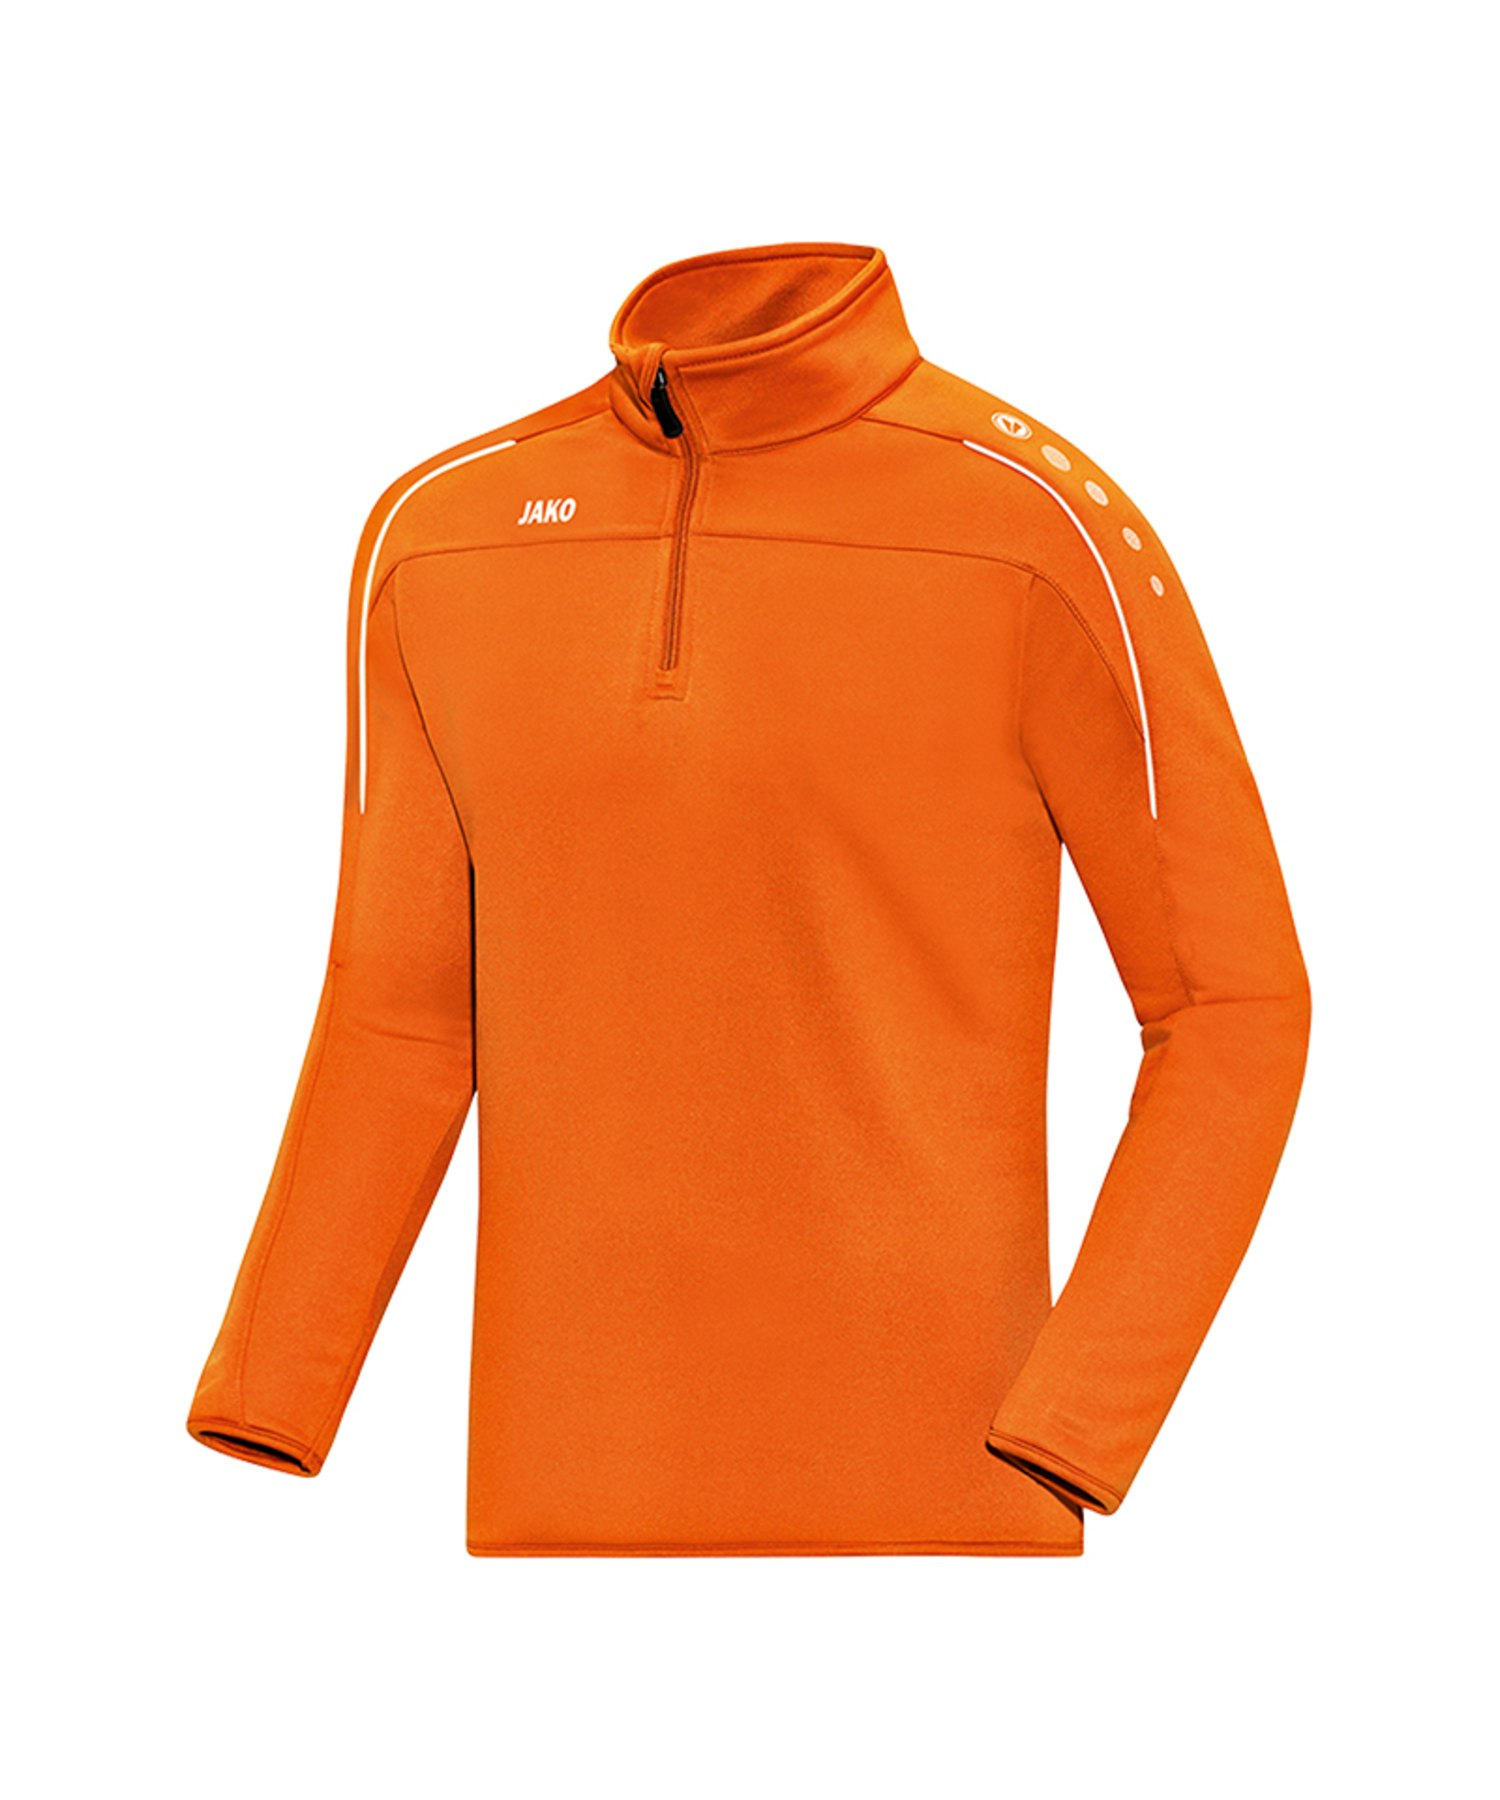 Jako Classico Ziptop Orange F19 - Orange